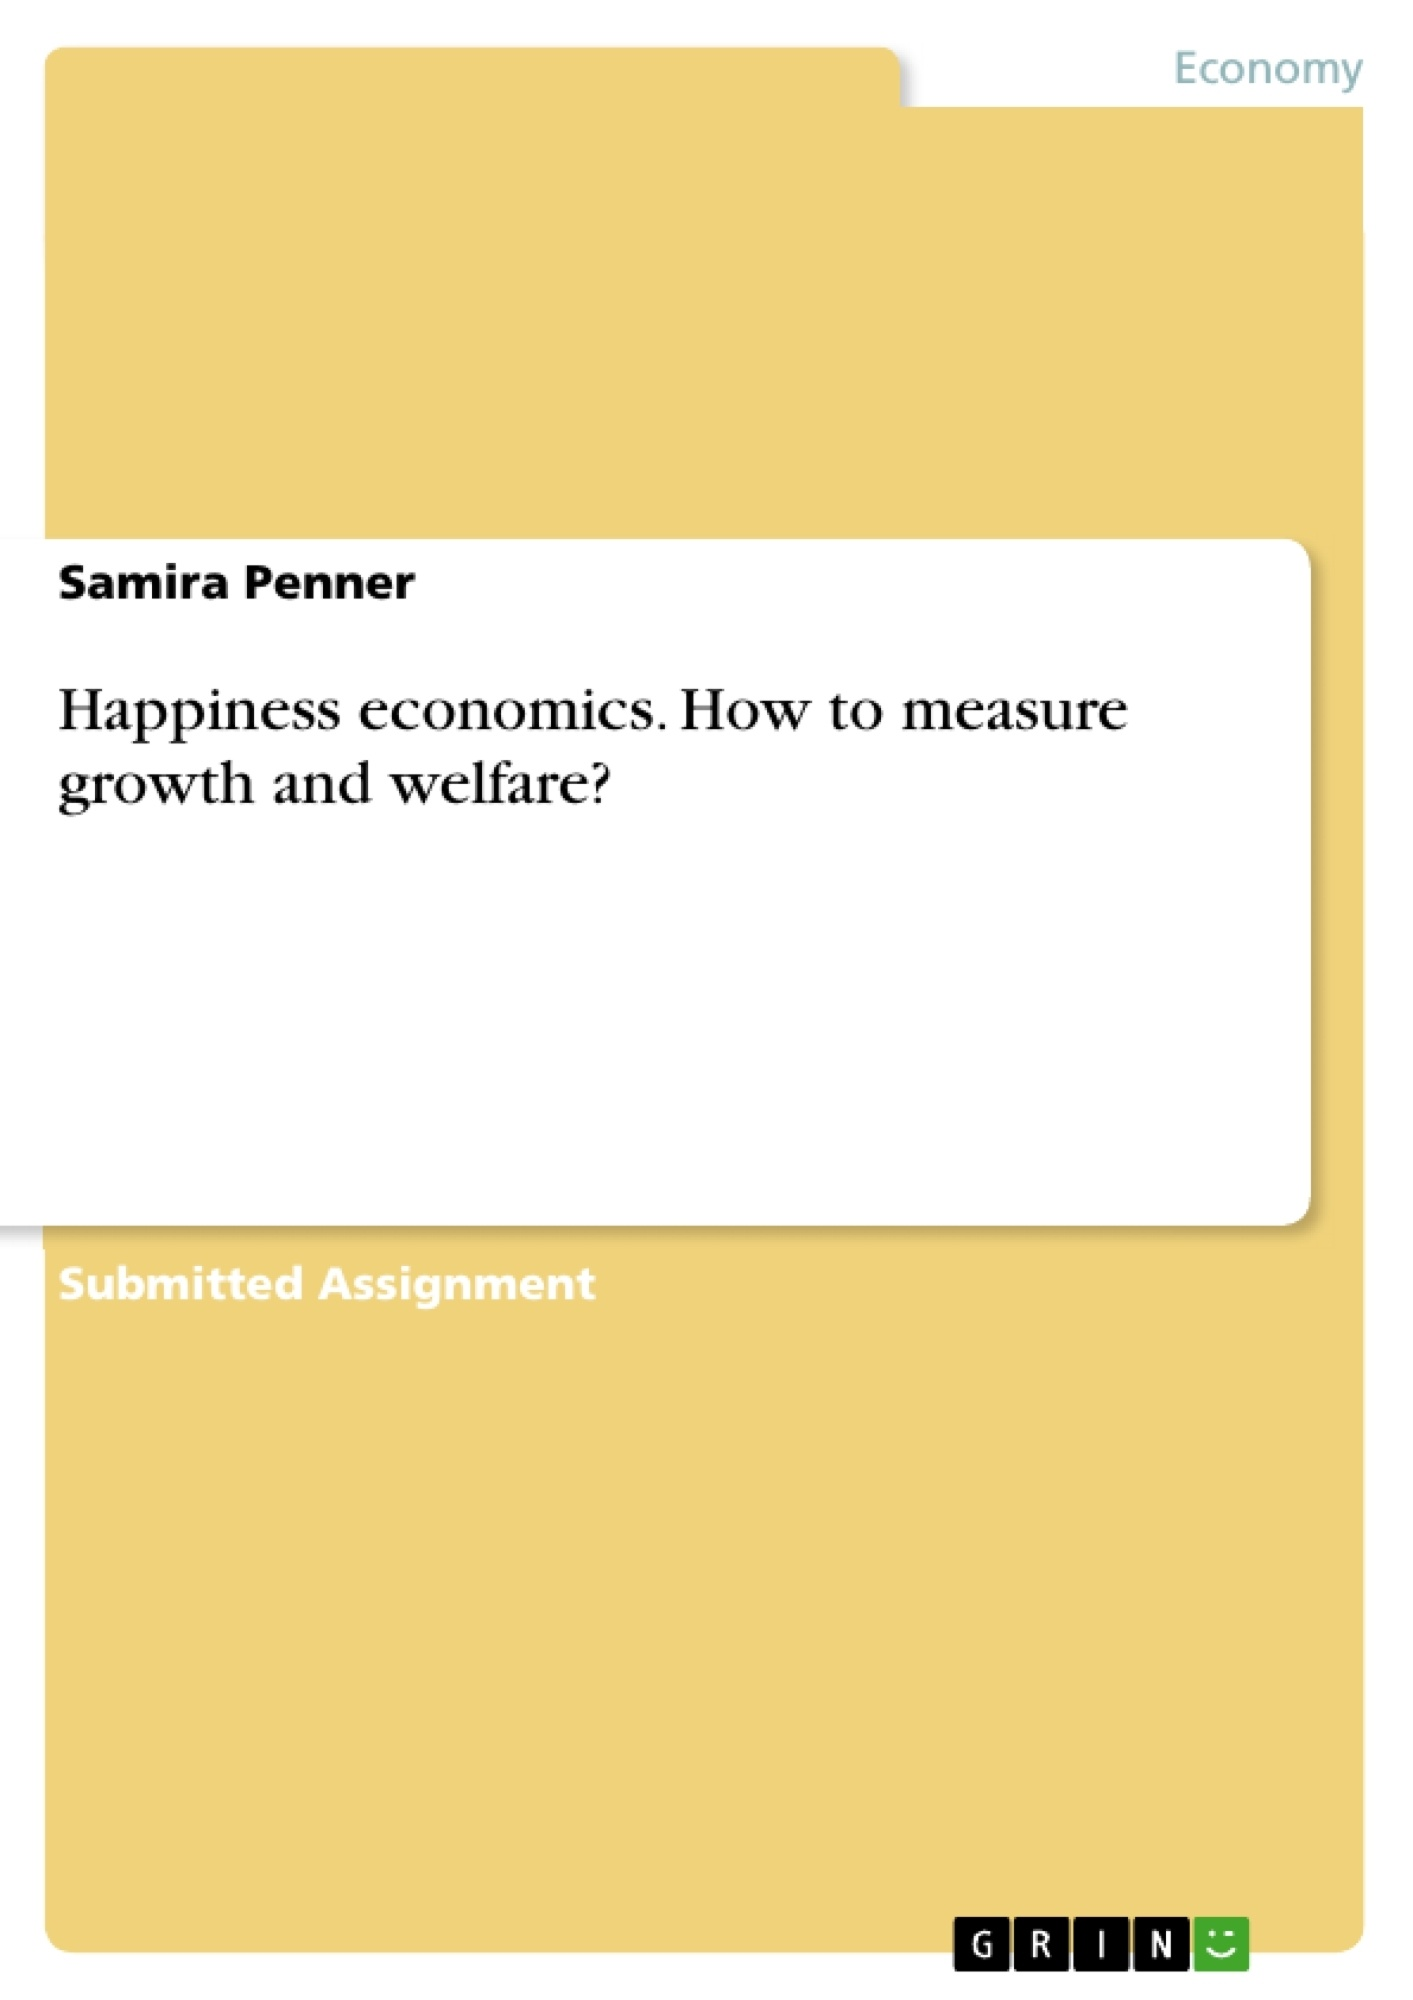 Title: Happiness economics. How to measure growth and welfare?